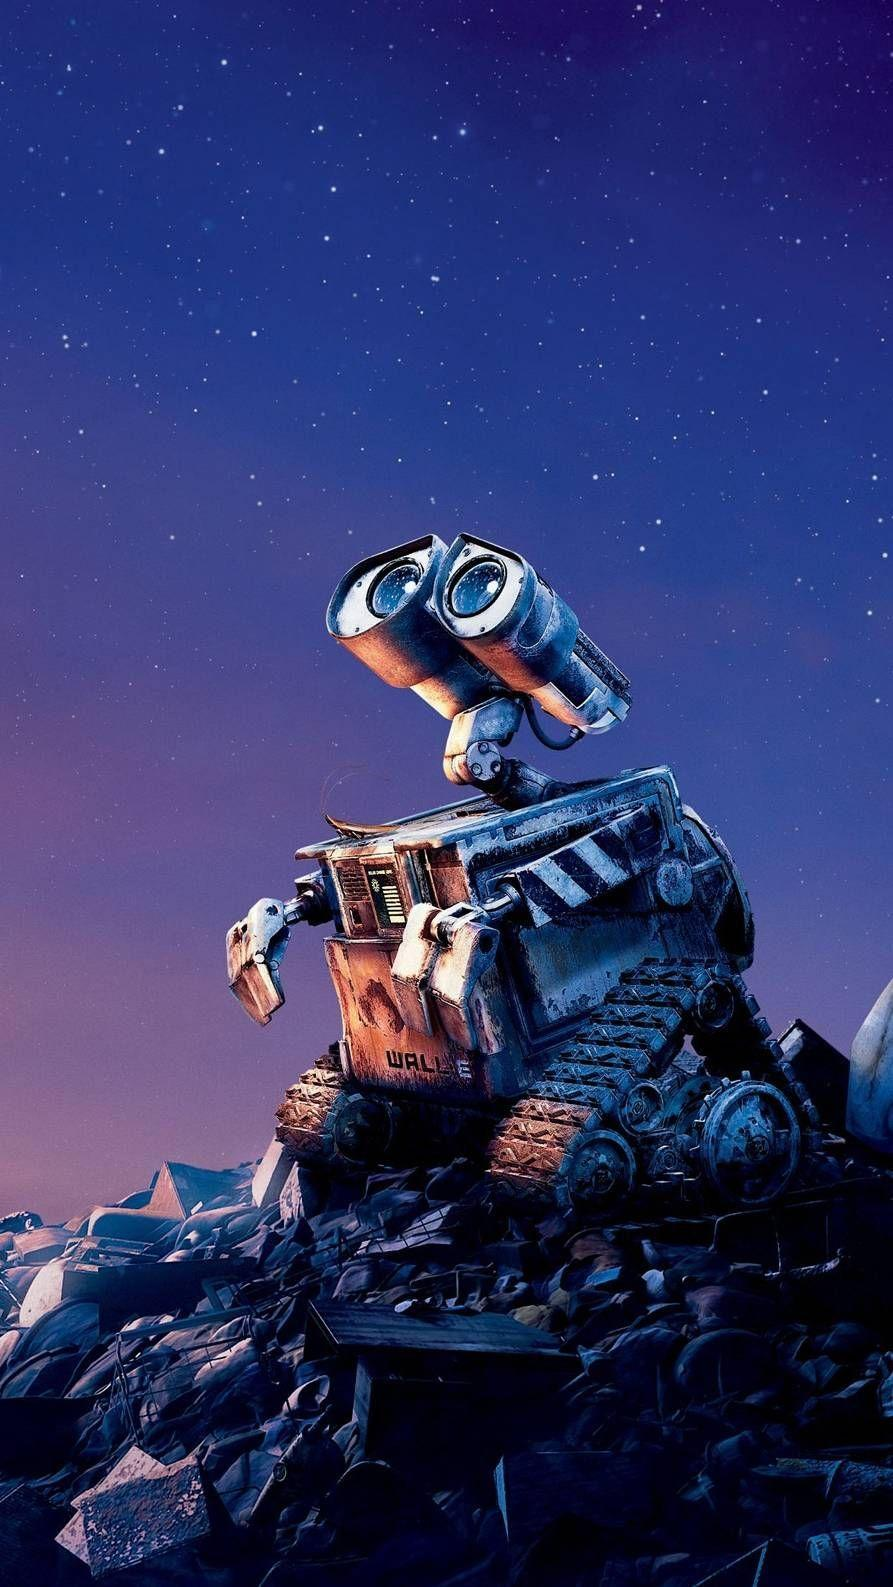 Wall E Hd Android Wallpapers Wallpaper Cave